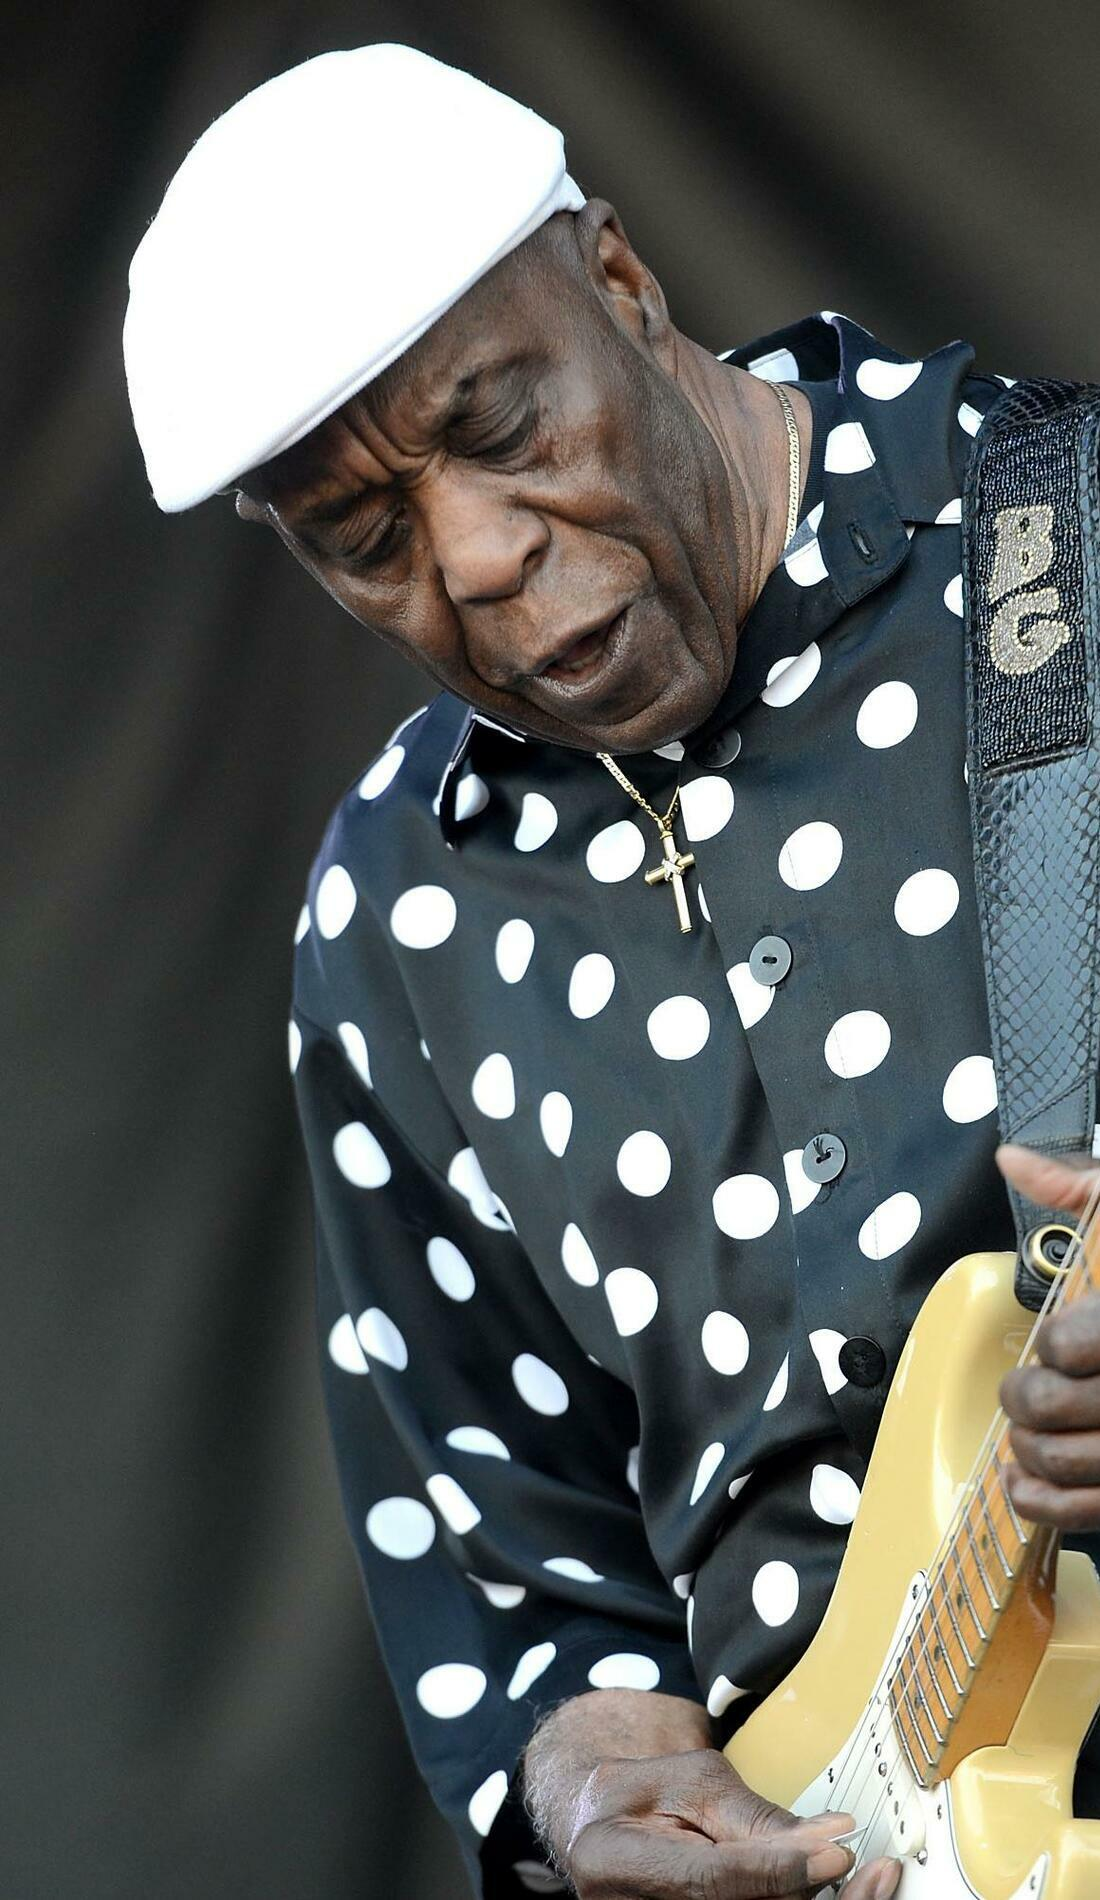 A Buddy Guy live event